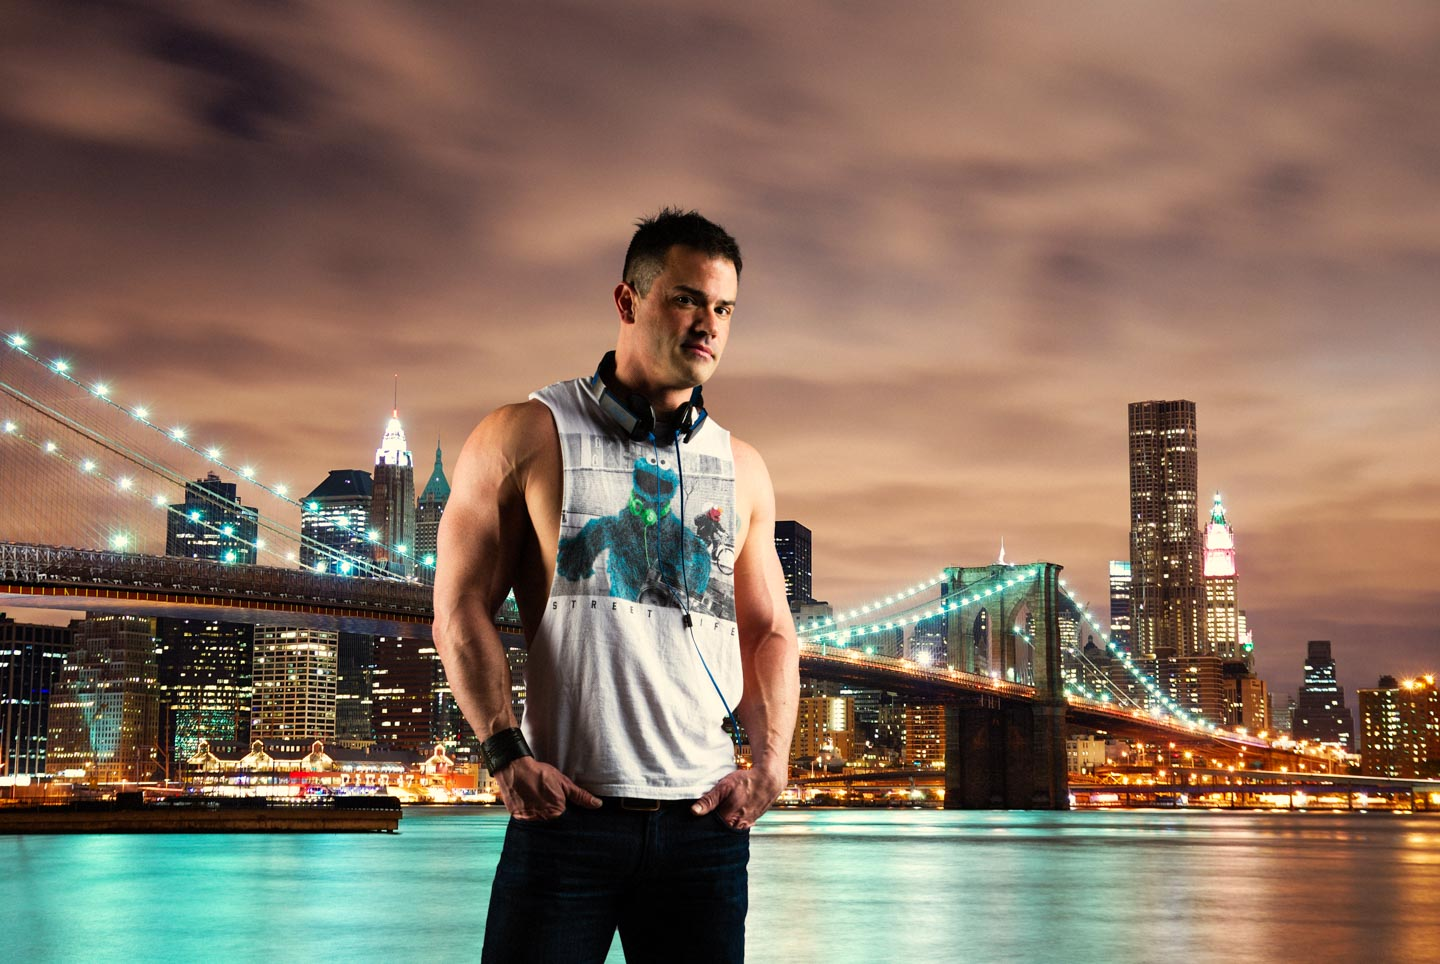 Robbie added to New York to promote his DJ business